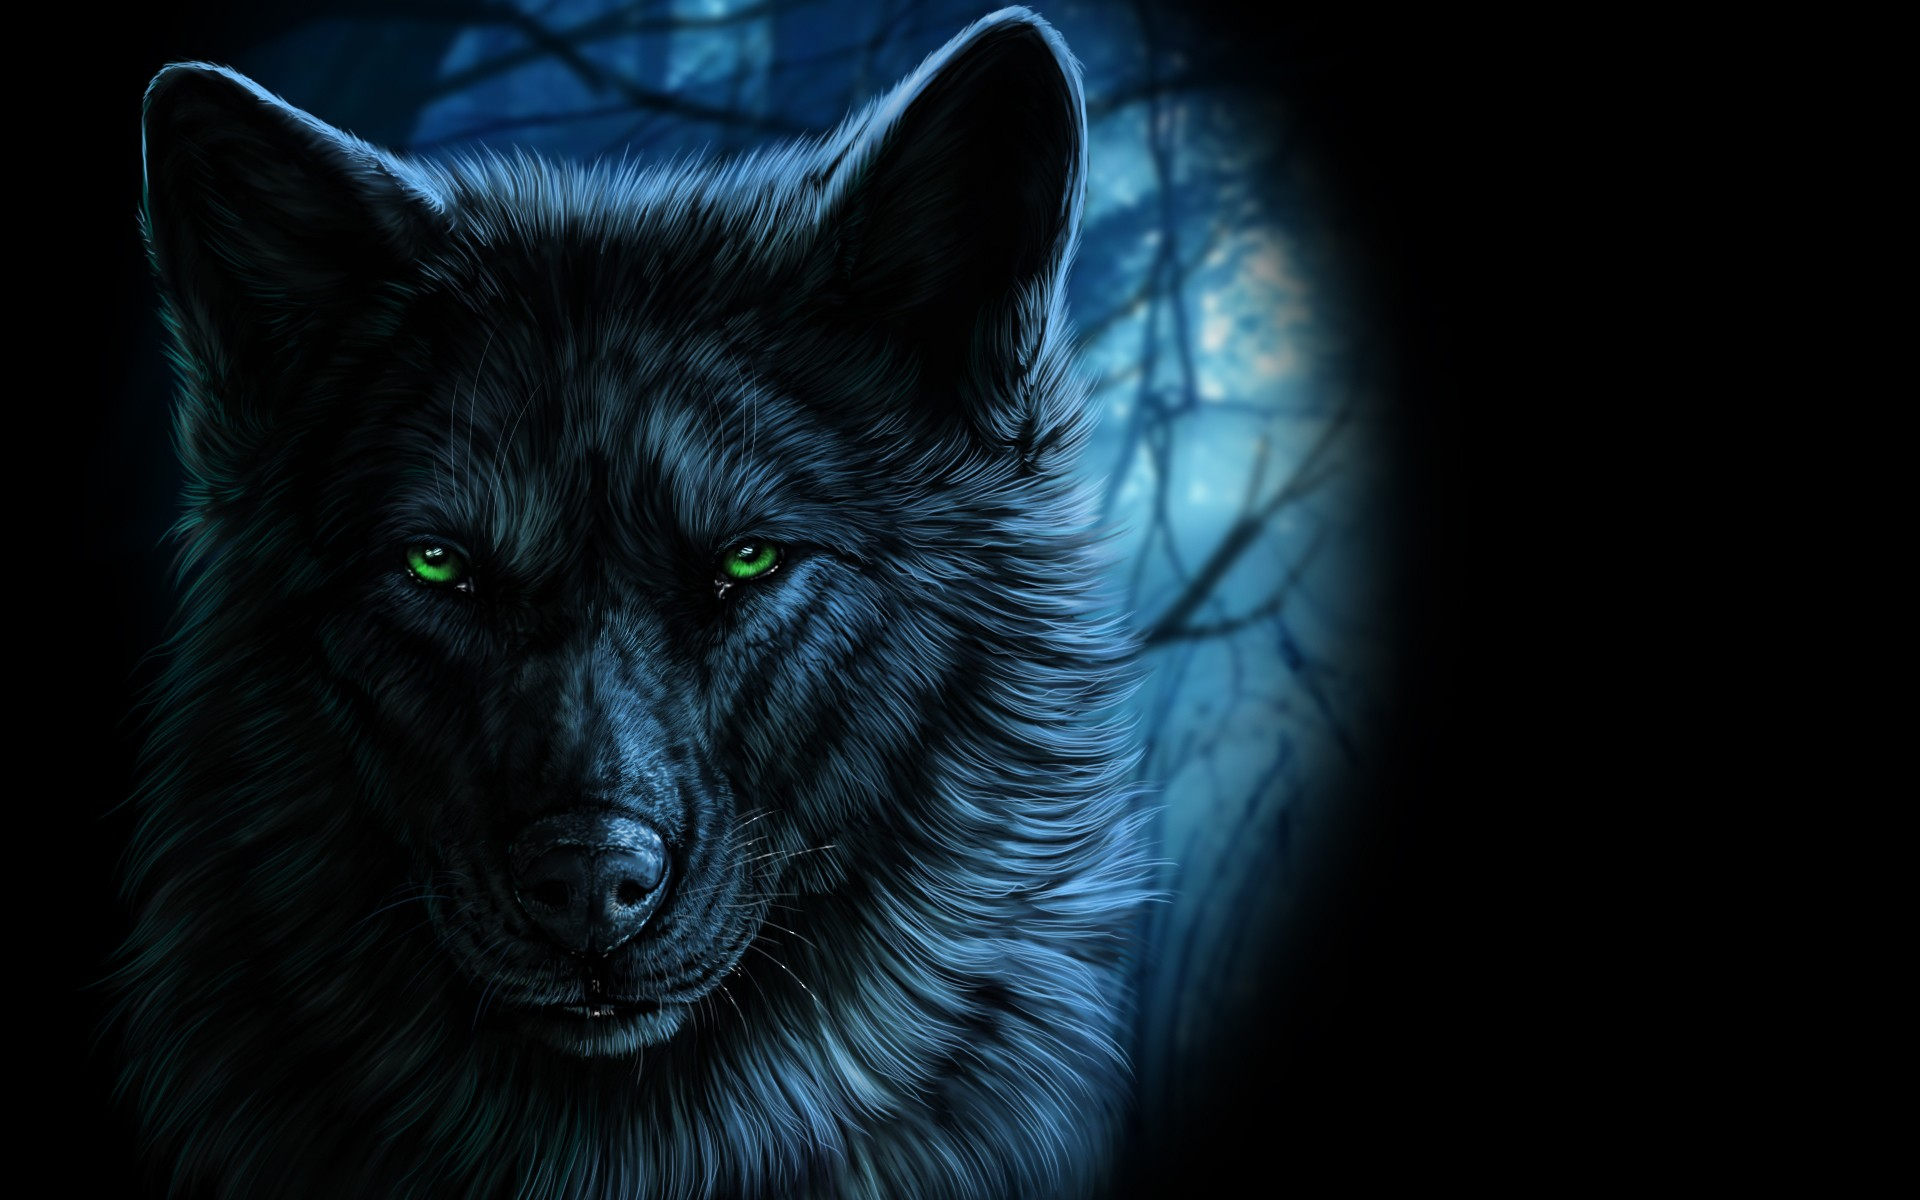 Tattoo Wolf Mond Wolf, Fantasy Art, Animals, Artwork Wallpapers Hd